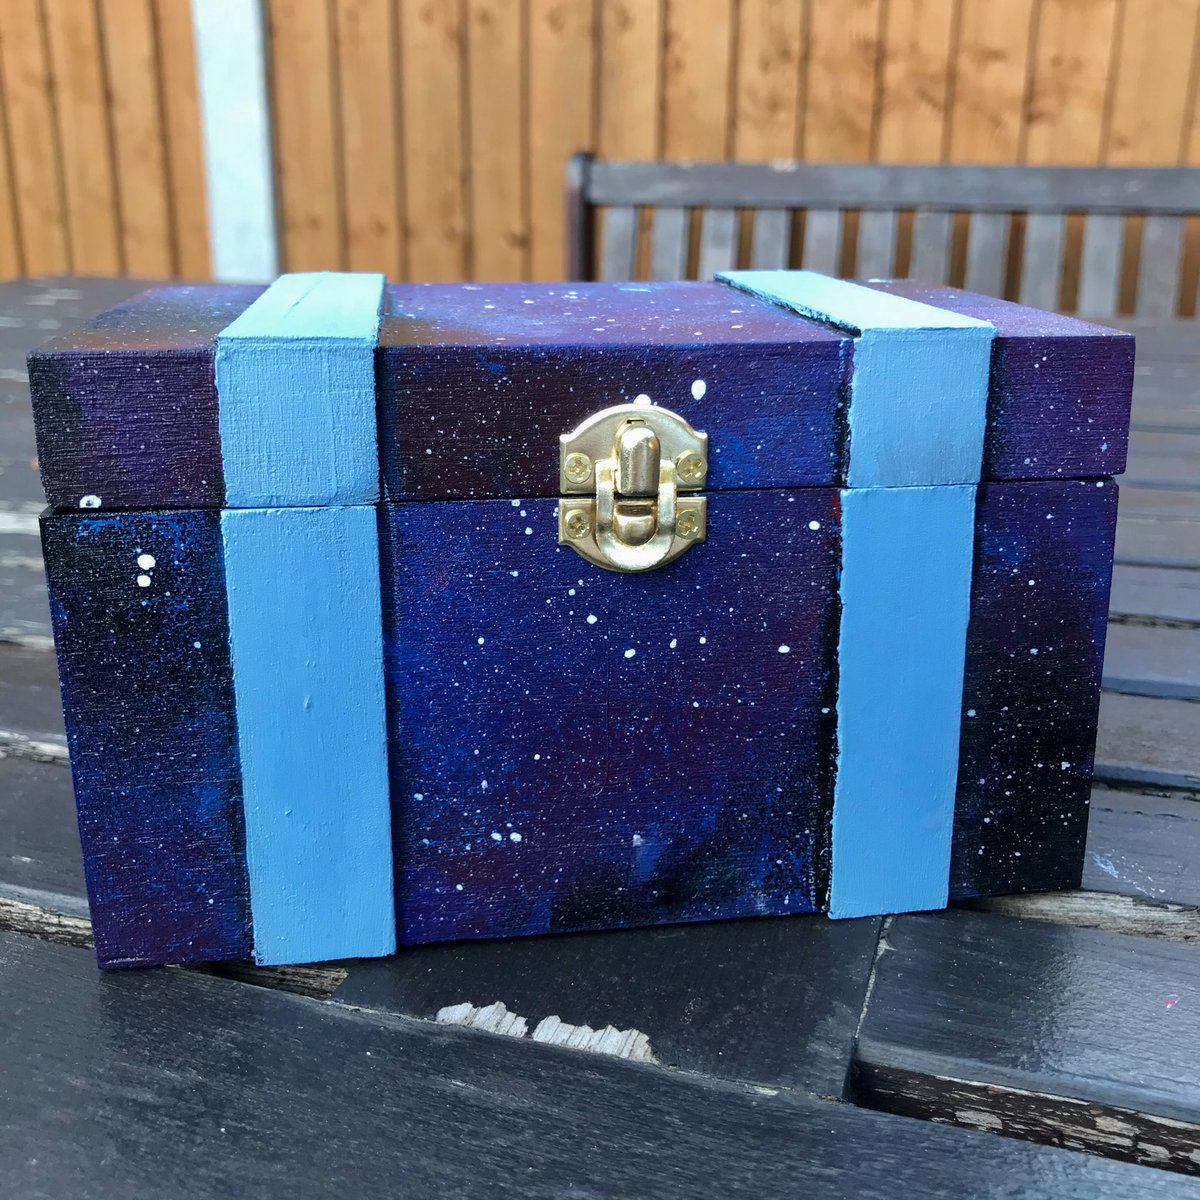 Galaxy wooden painted box✨ One of a kind and hand painted with love. A really great gift idea for any space lovers in your life🪐⭐️ Honestly was pretty tempted to keep this one for myself because it's so damn pretty🥺 fenn.bigcartel.com/product/galaxy… (vid below)